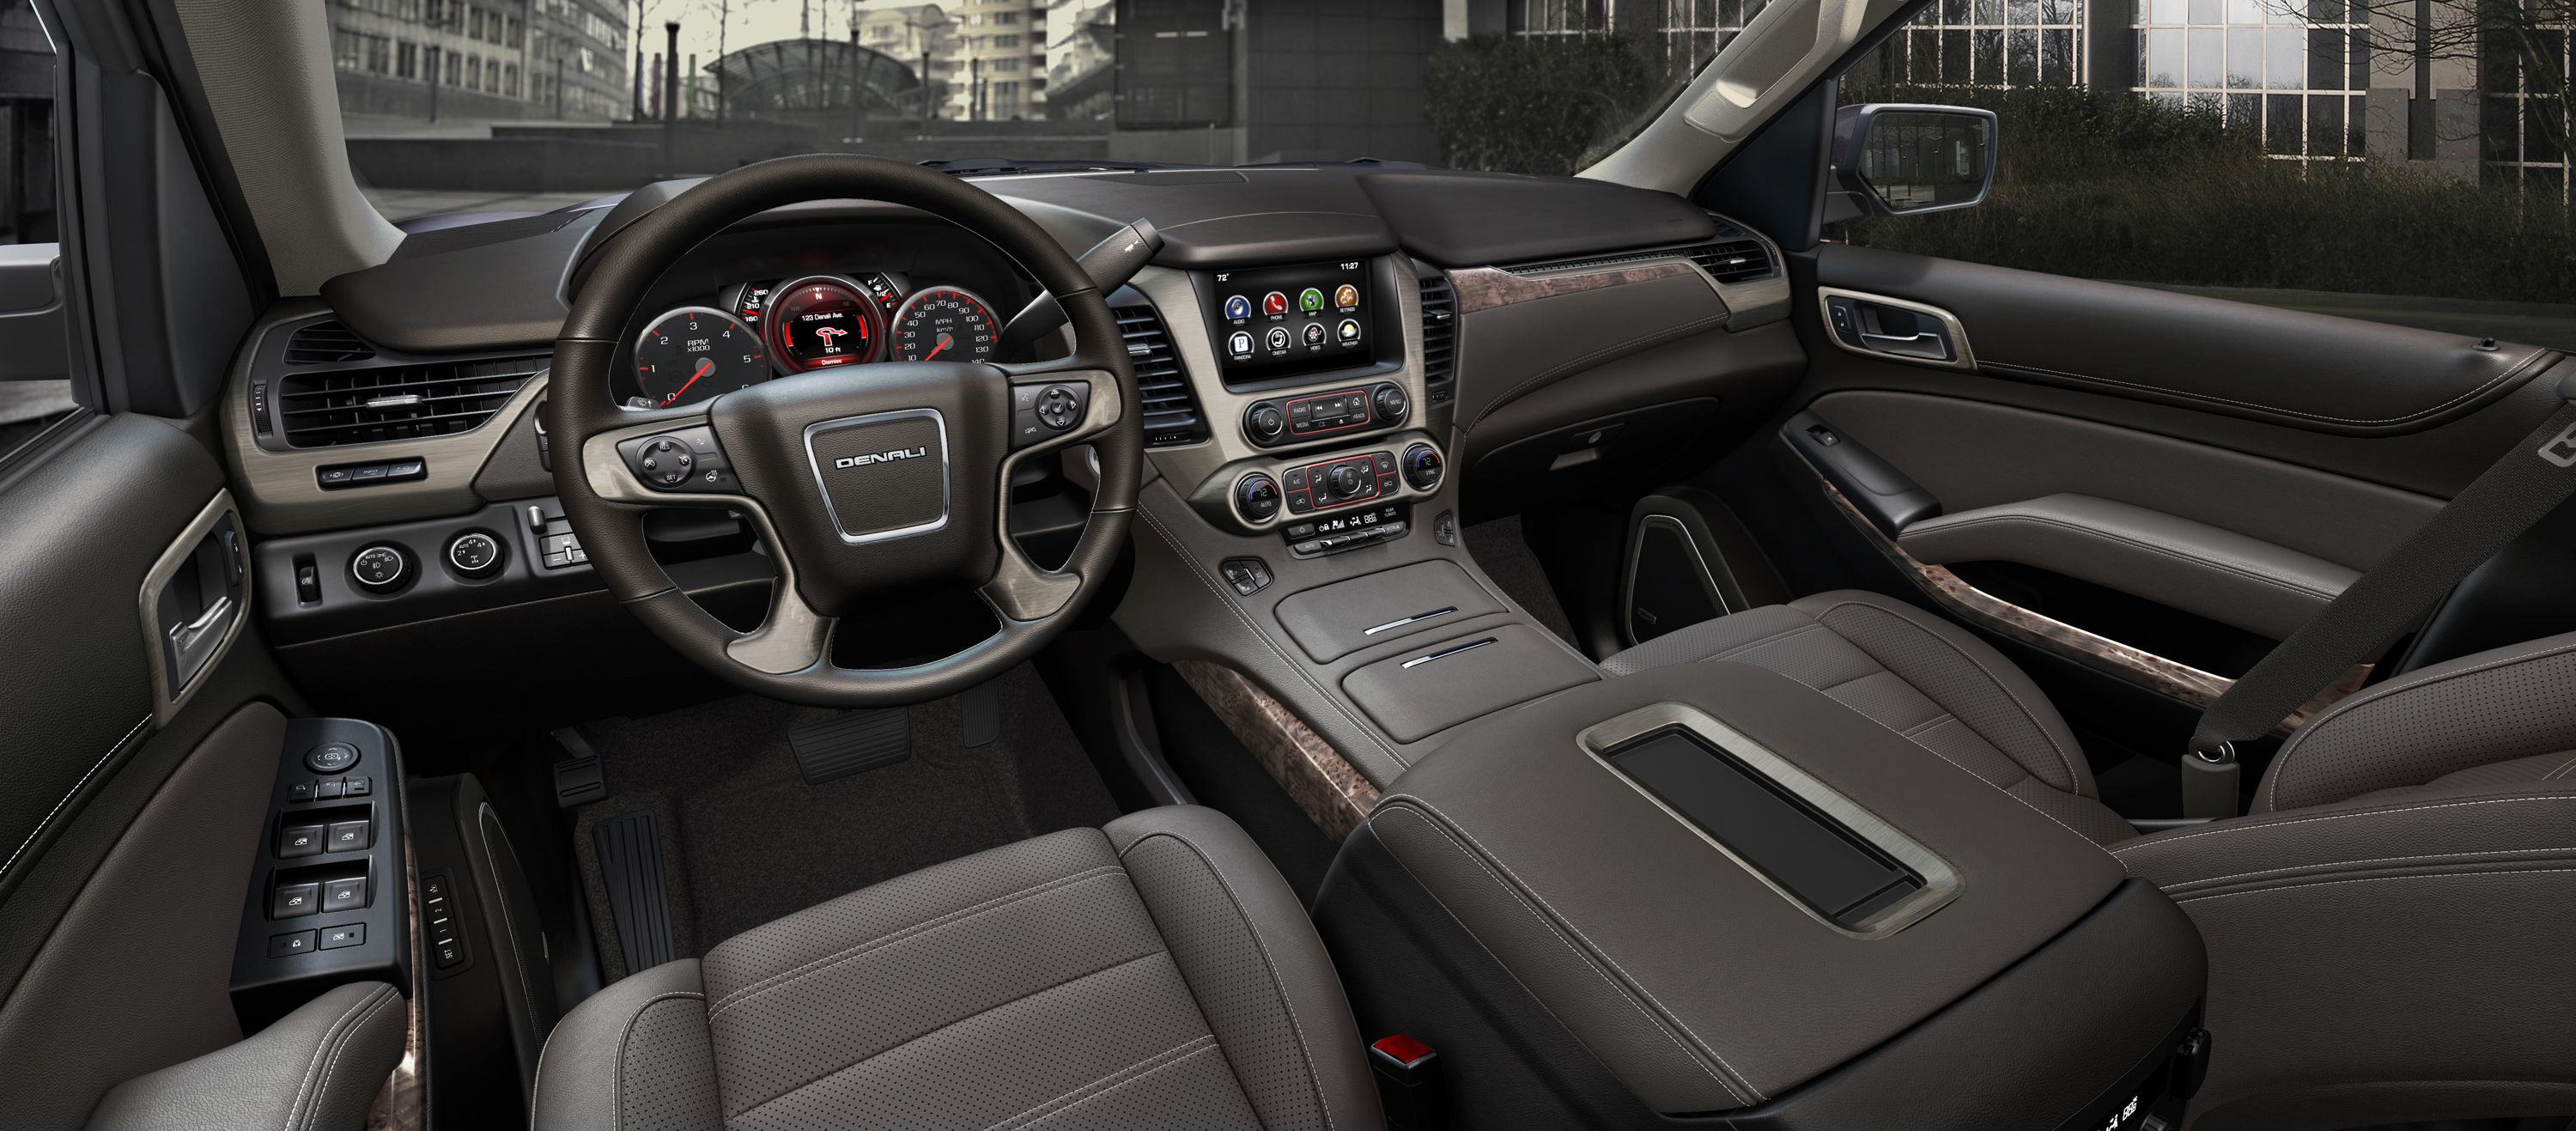 Trep S Choice The 2015 Gmc Yukon Denali Makes A Striking